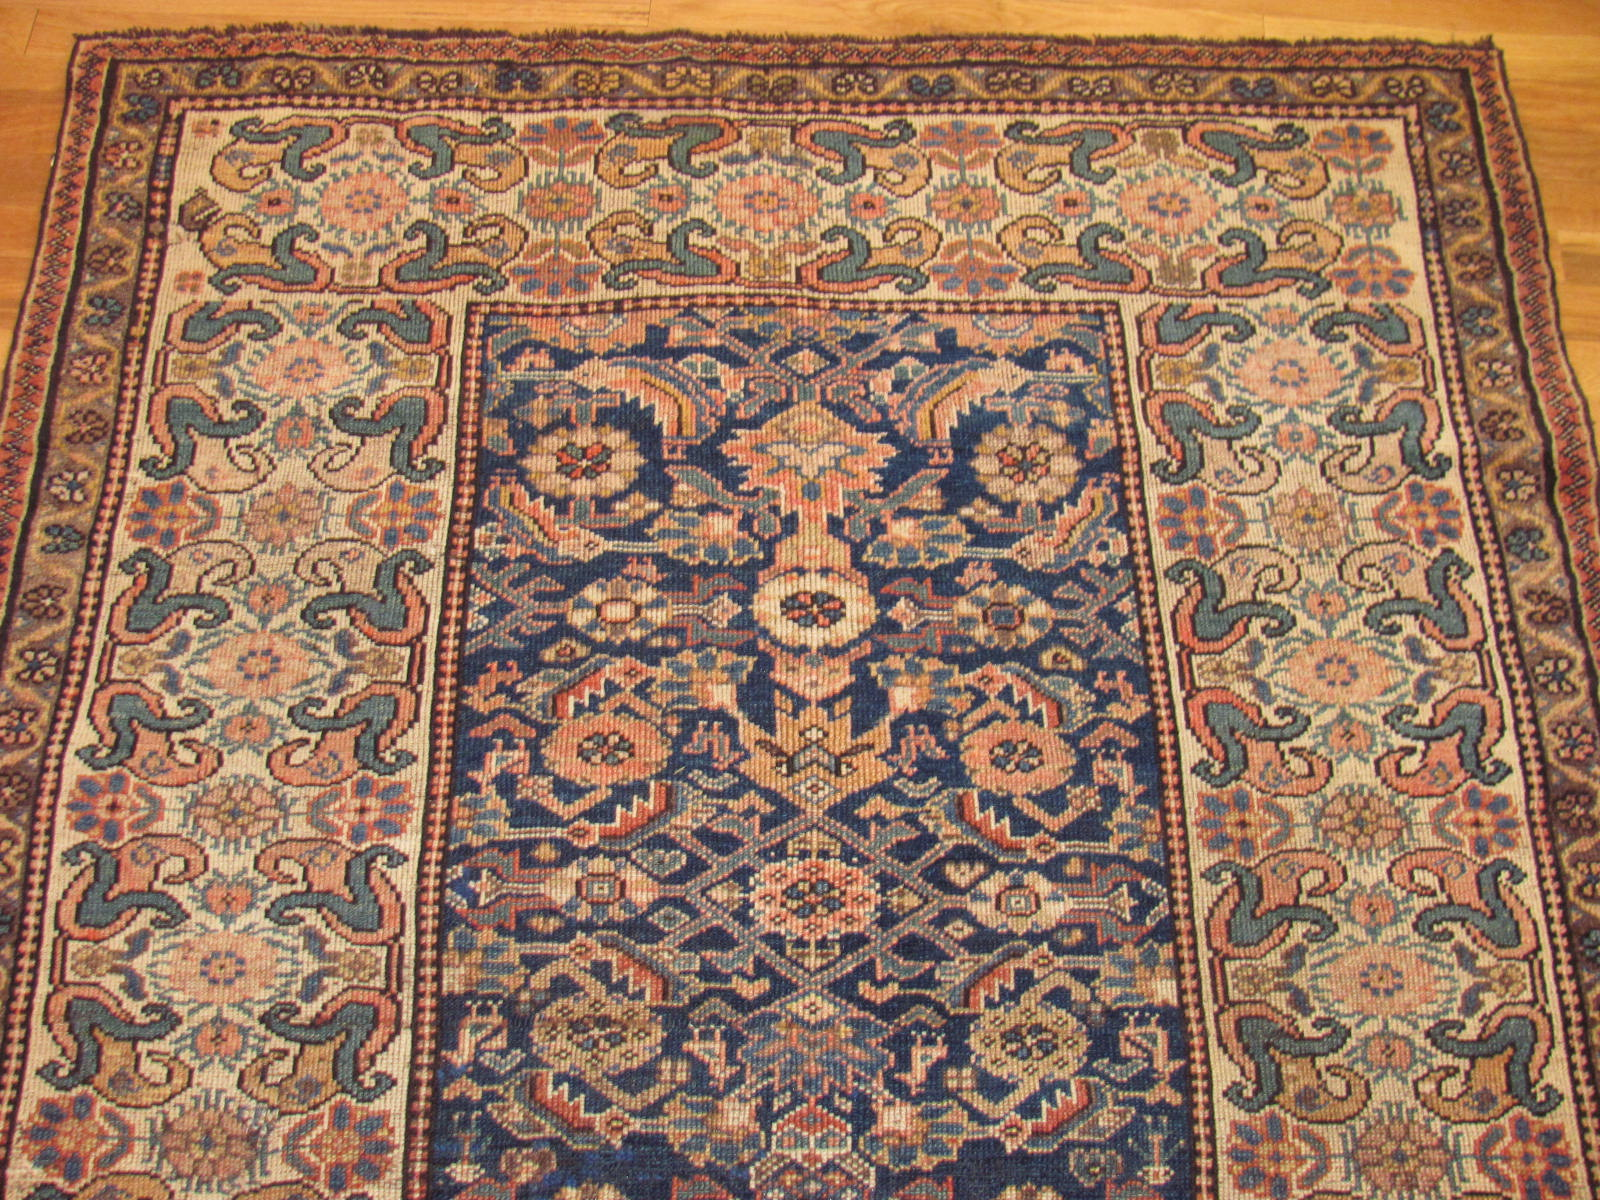 24585 antique persian kurdish rug 4,6 x 6,3 -1